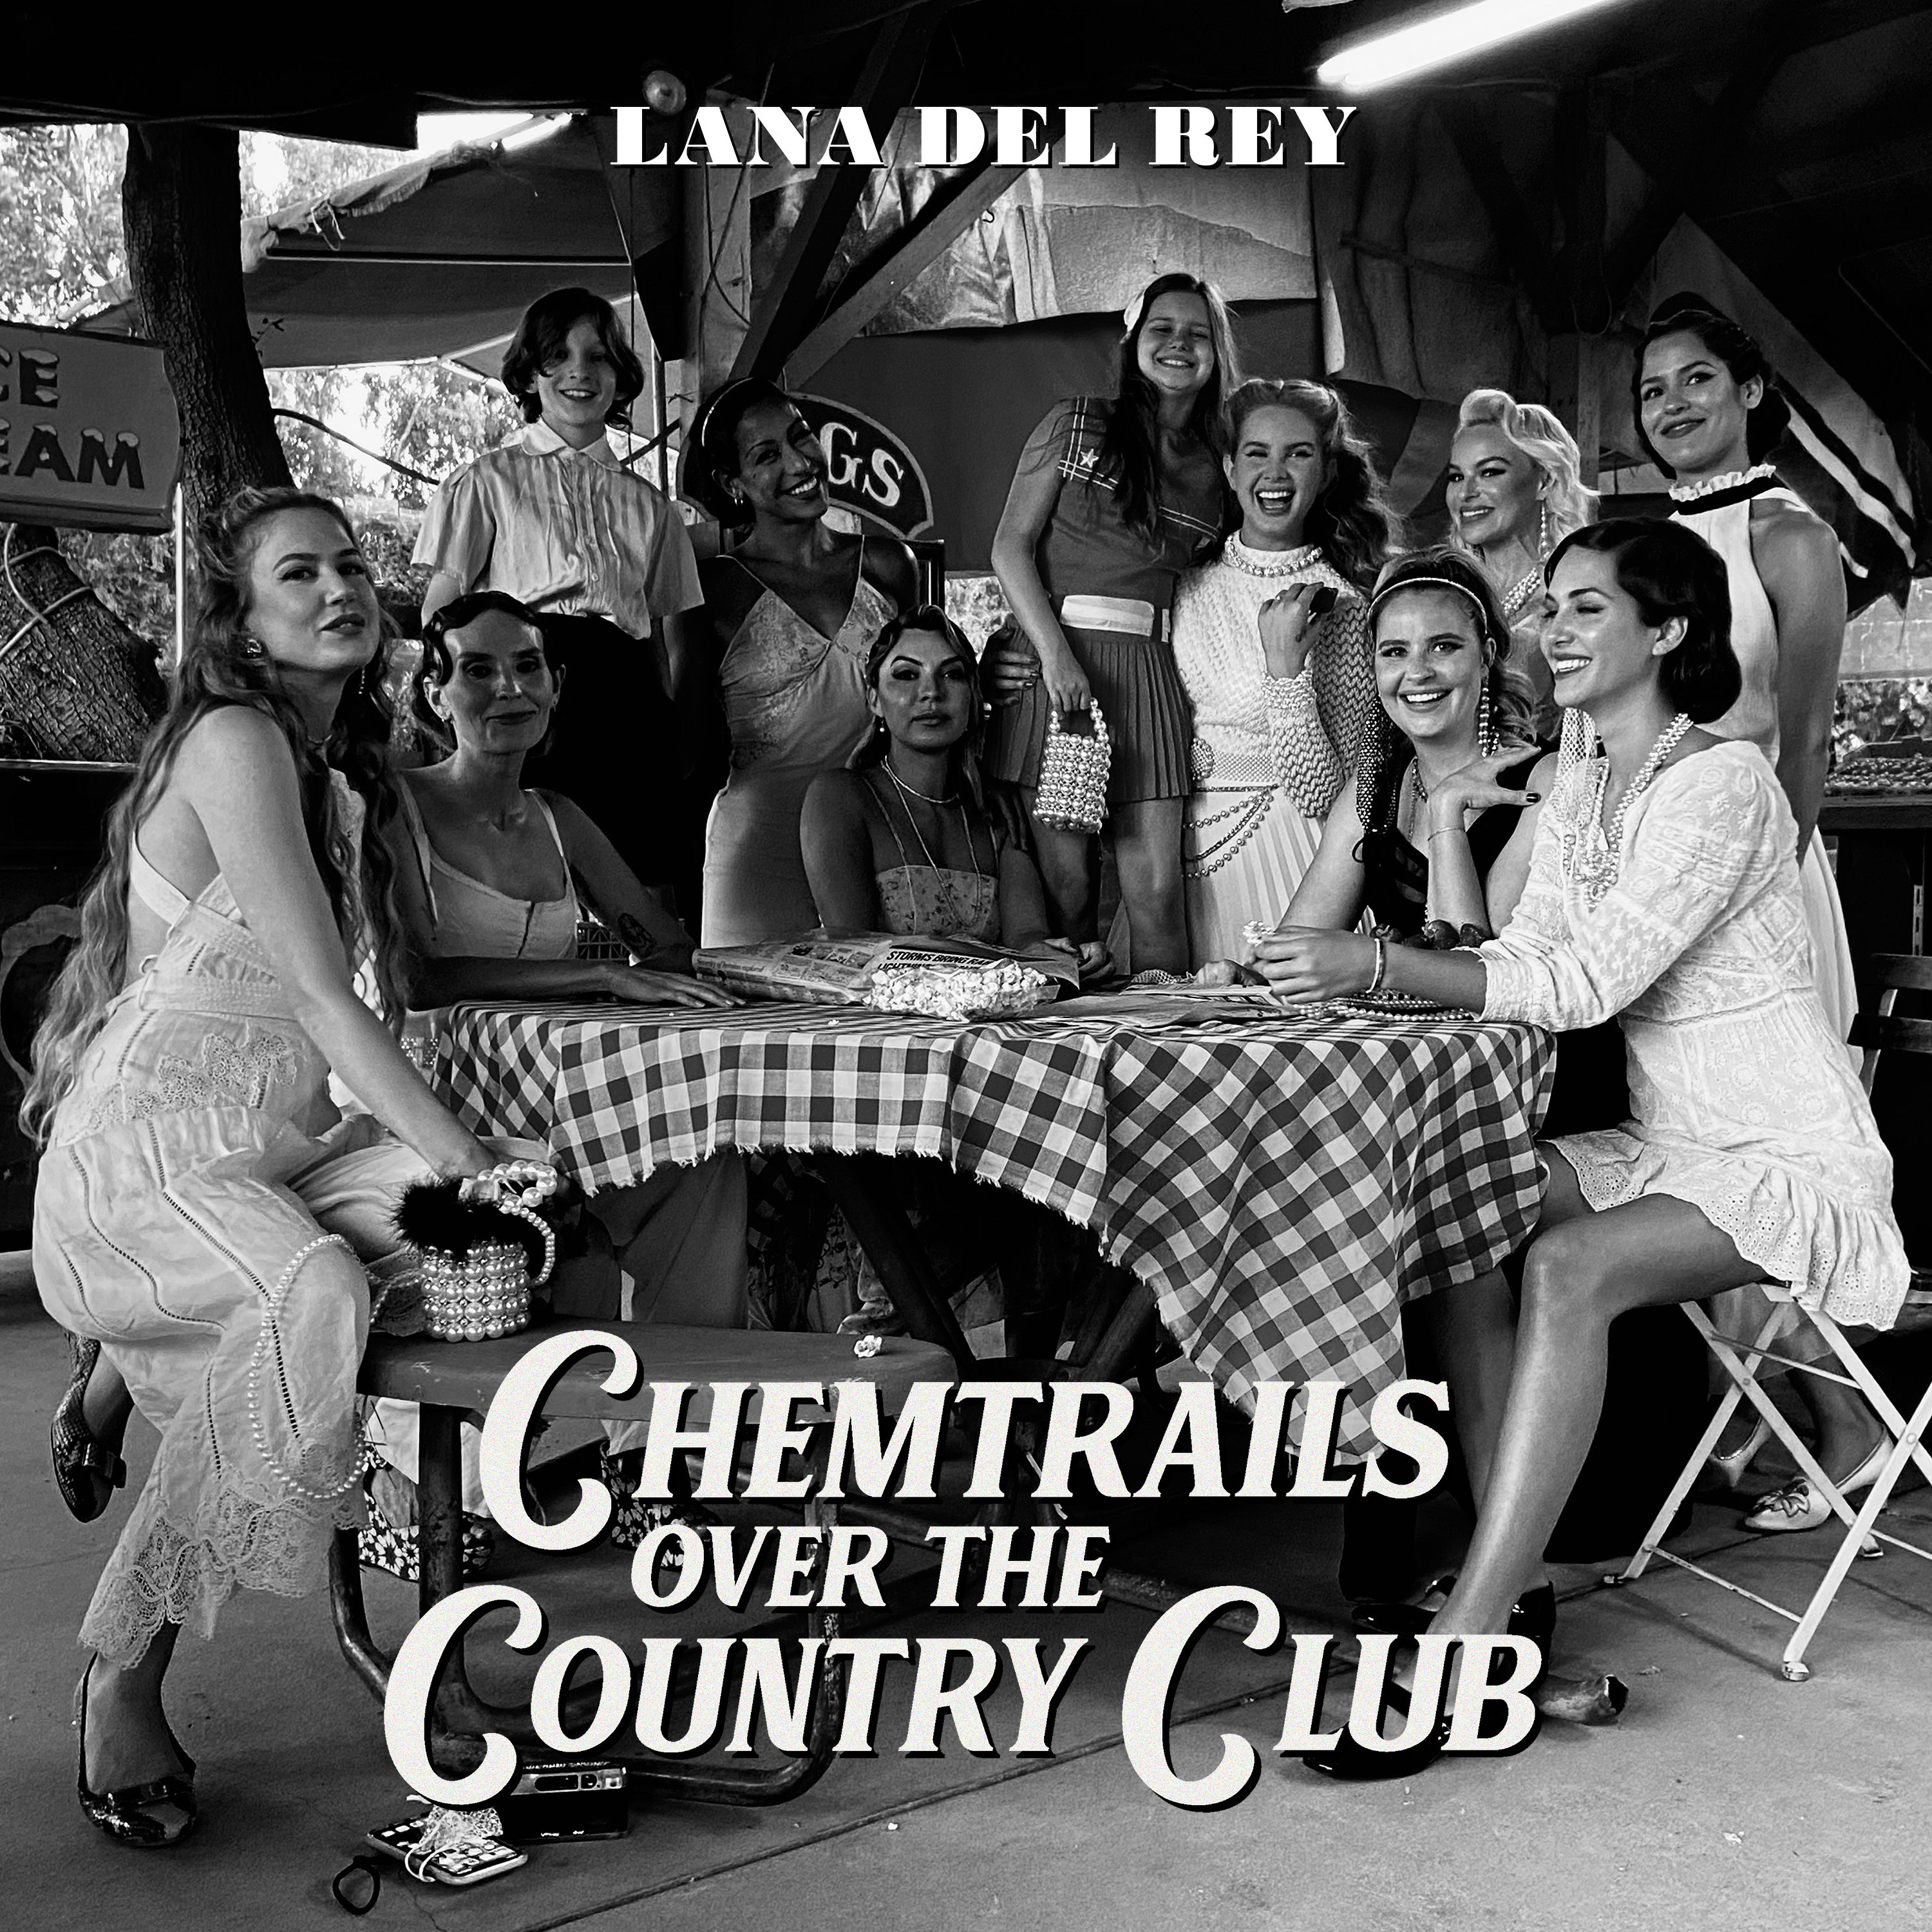 Chemtrails Over the Country Club album